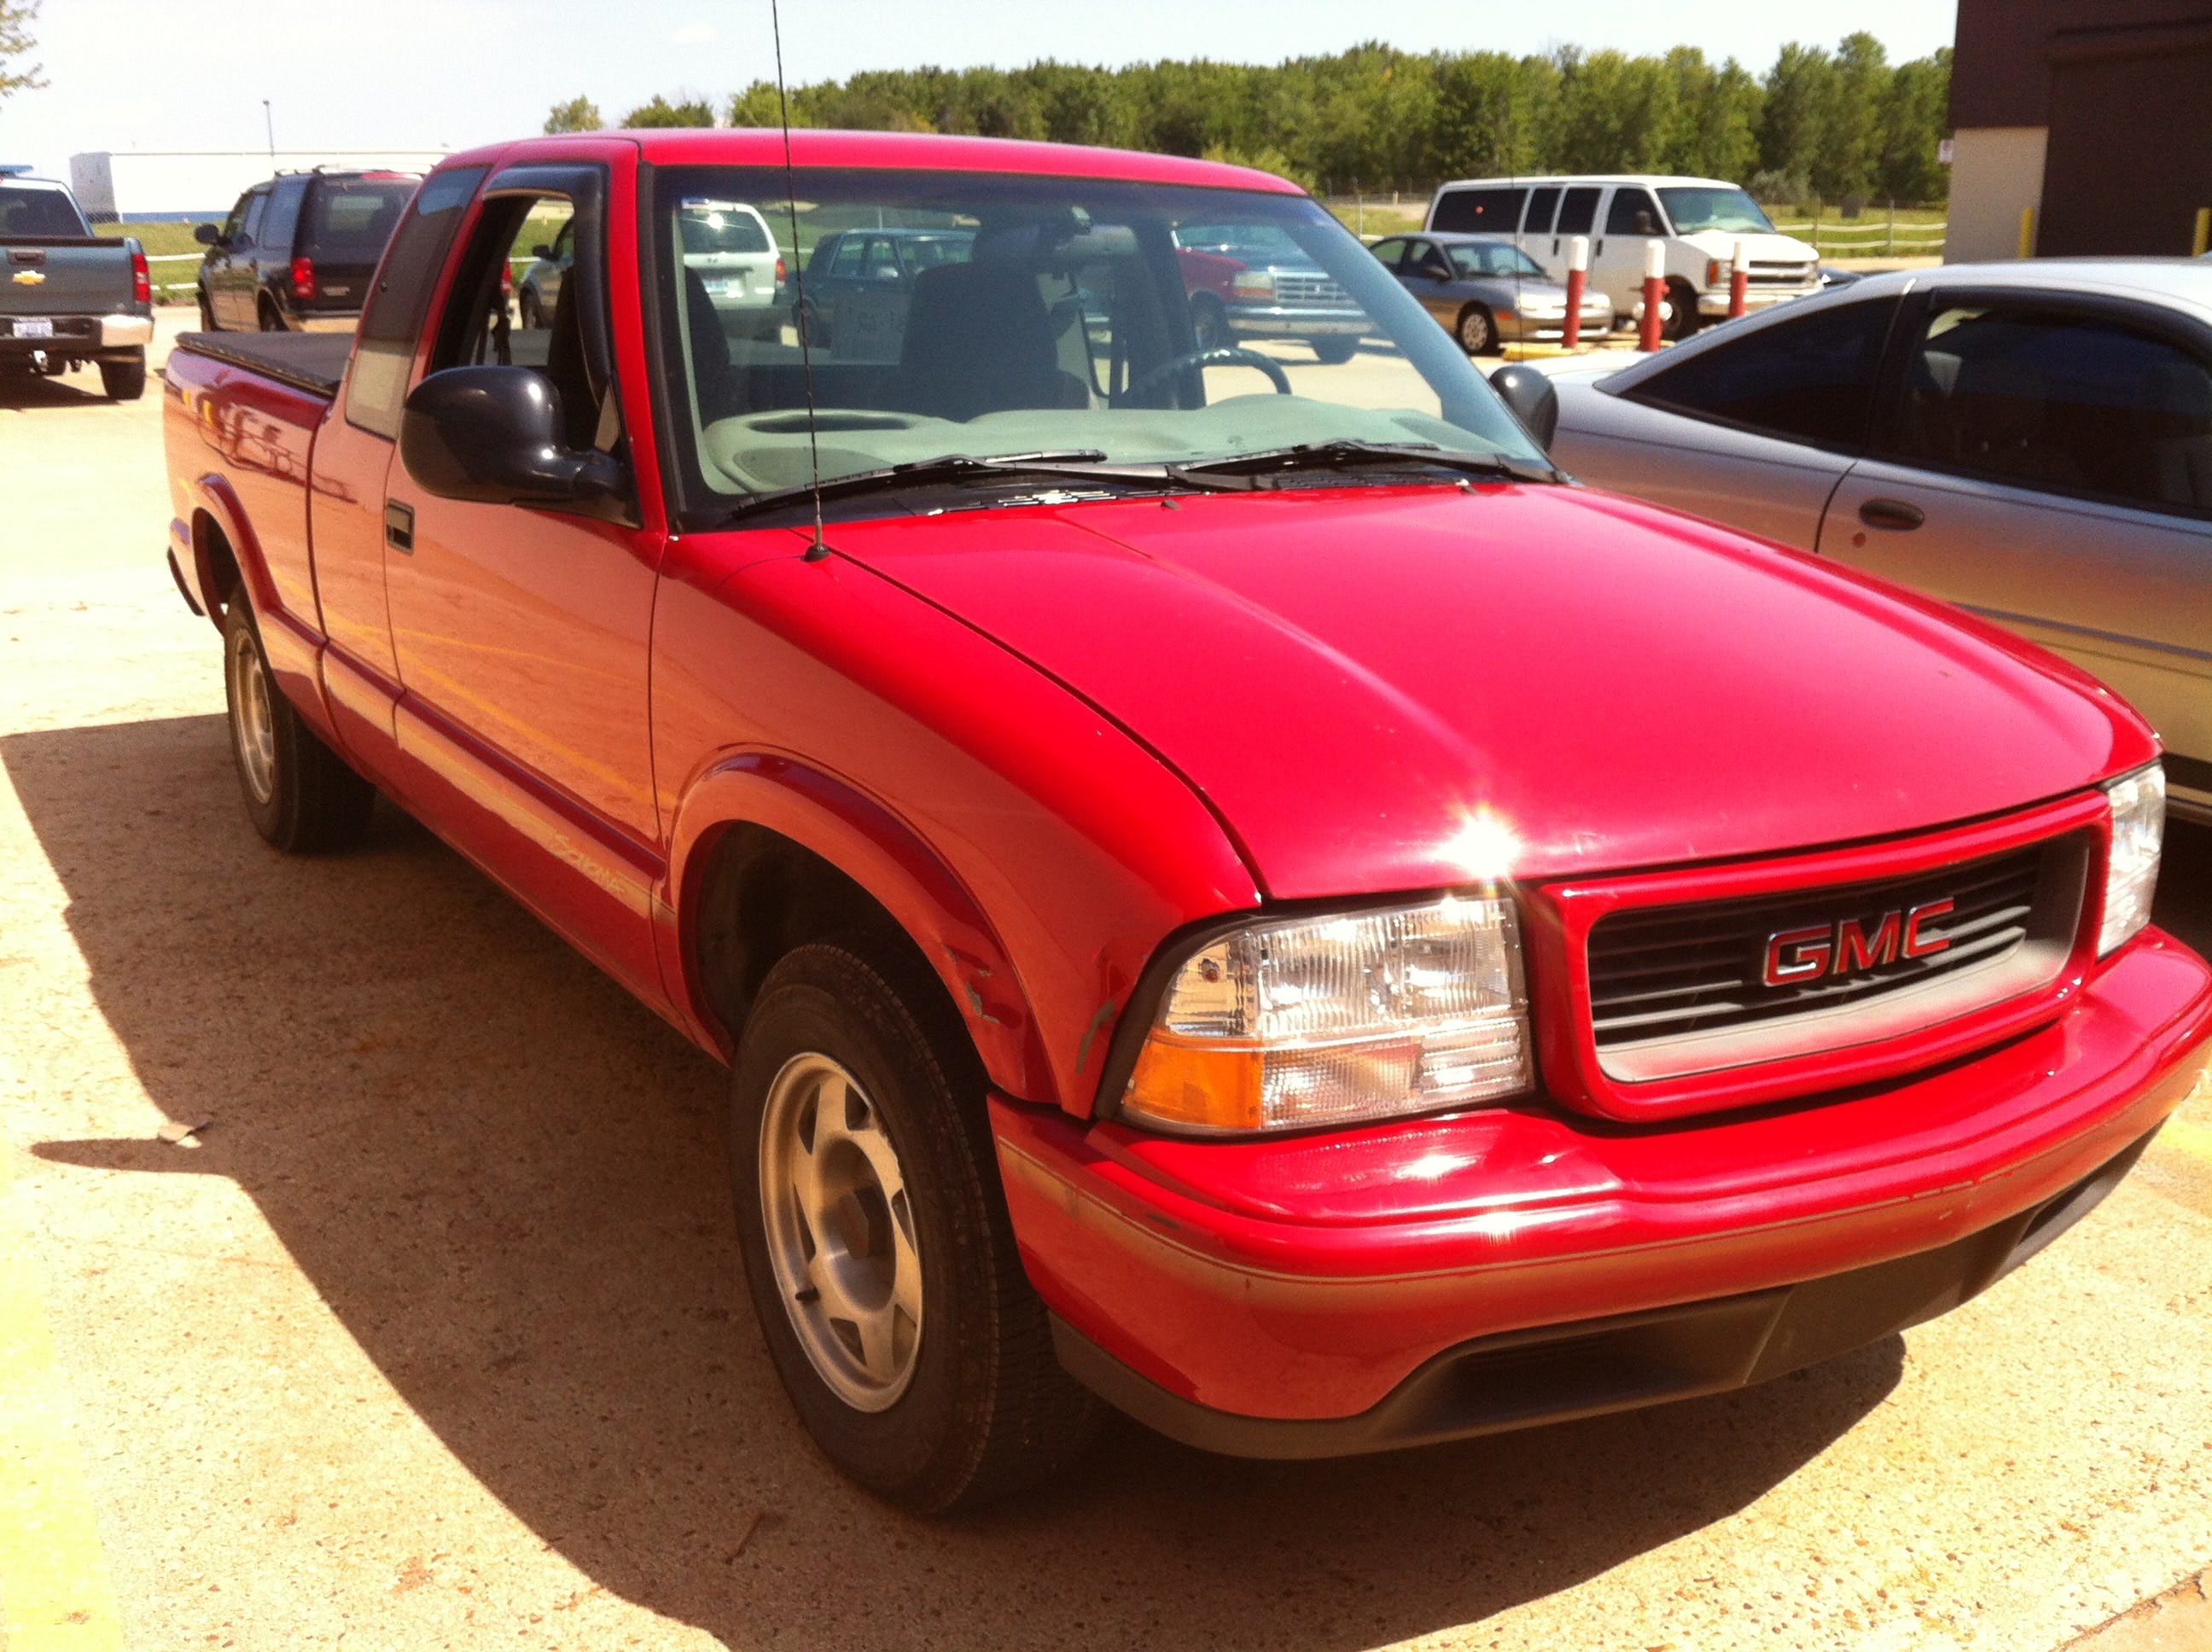 Junk 1998 GMC Sonoma In Hazel Park, MI | @Junk my Car